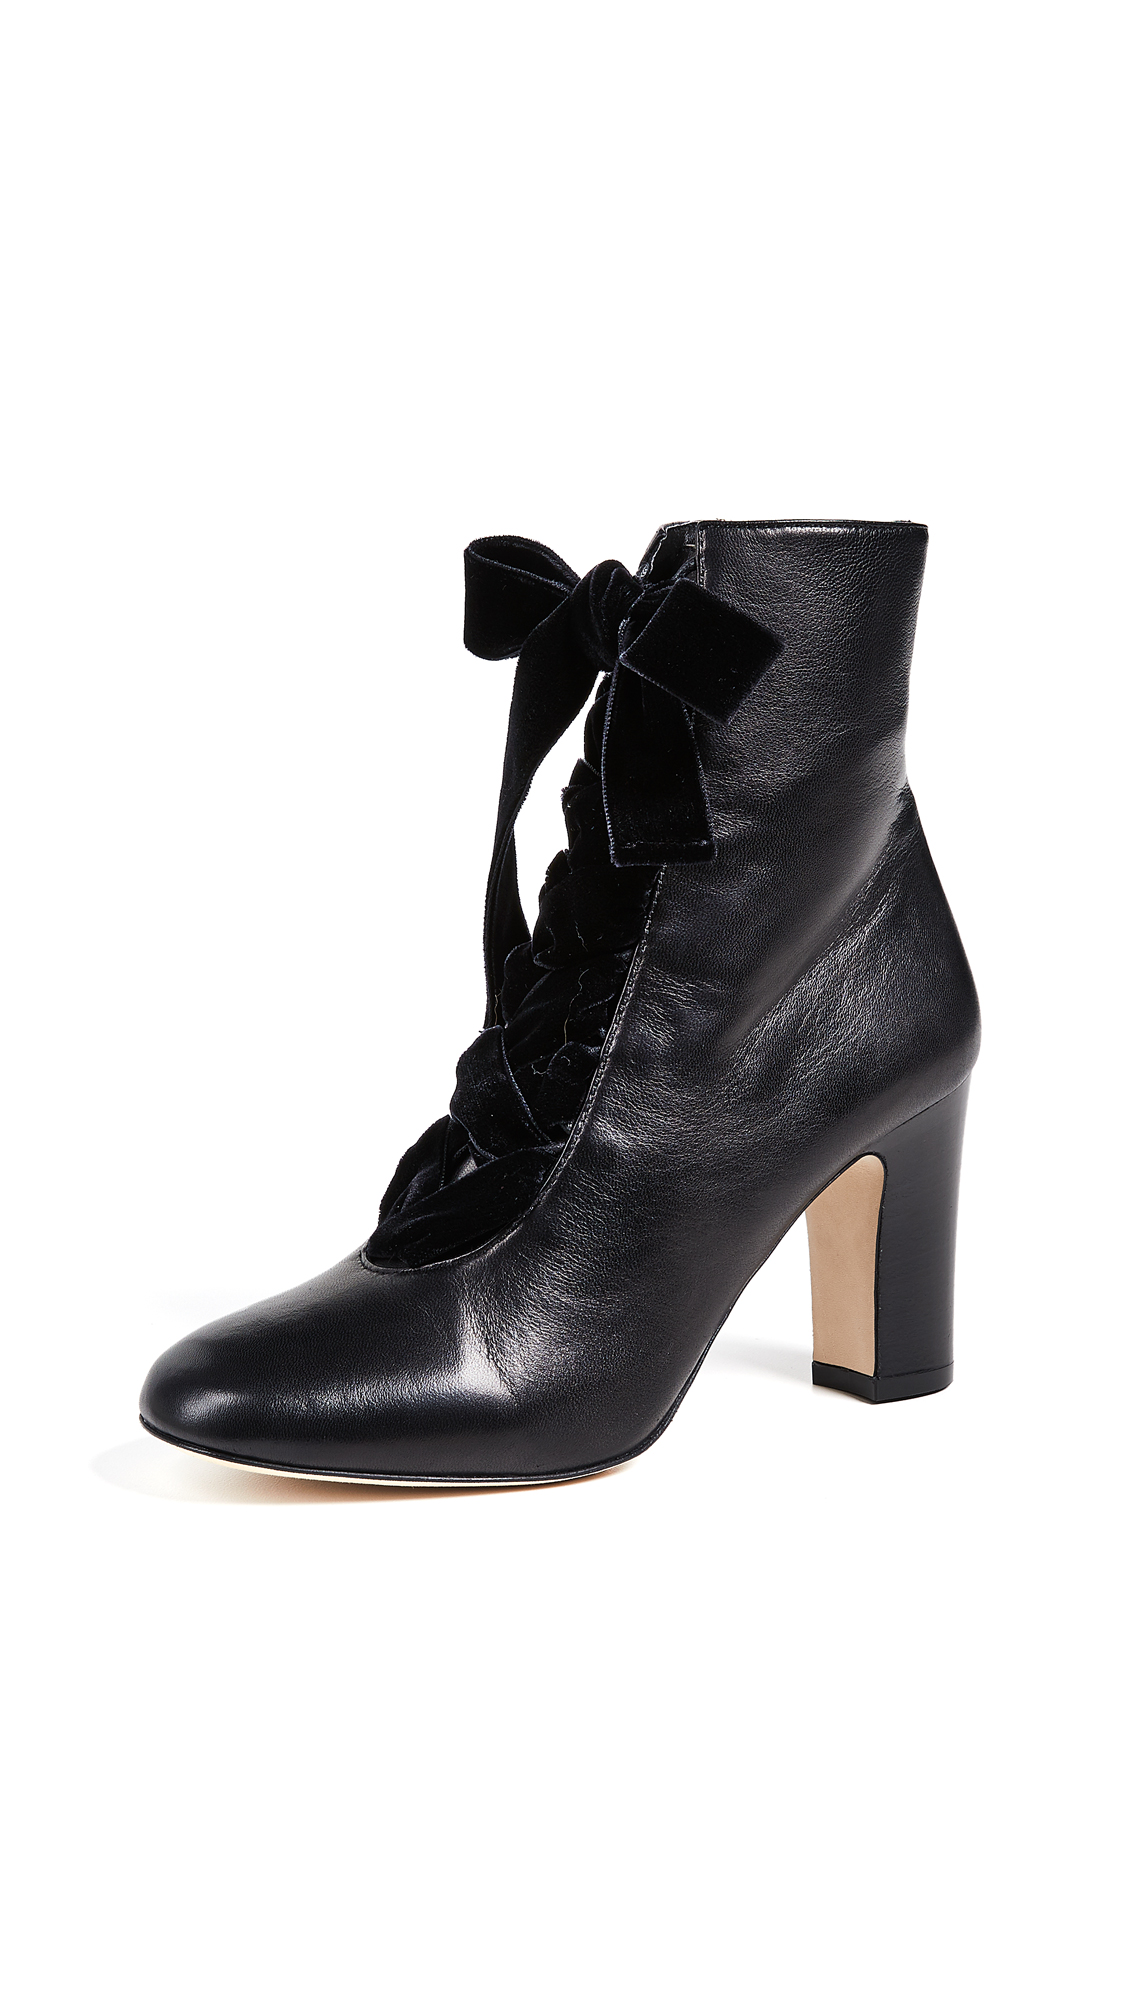 L.K. Bennett Maxine Lace Up Ankle Boots - Black